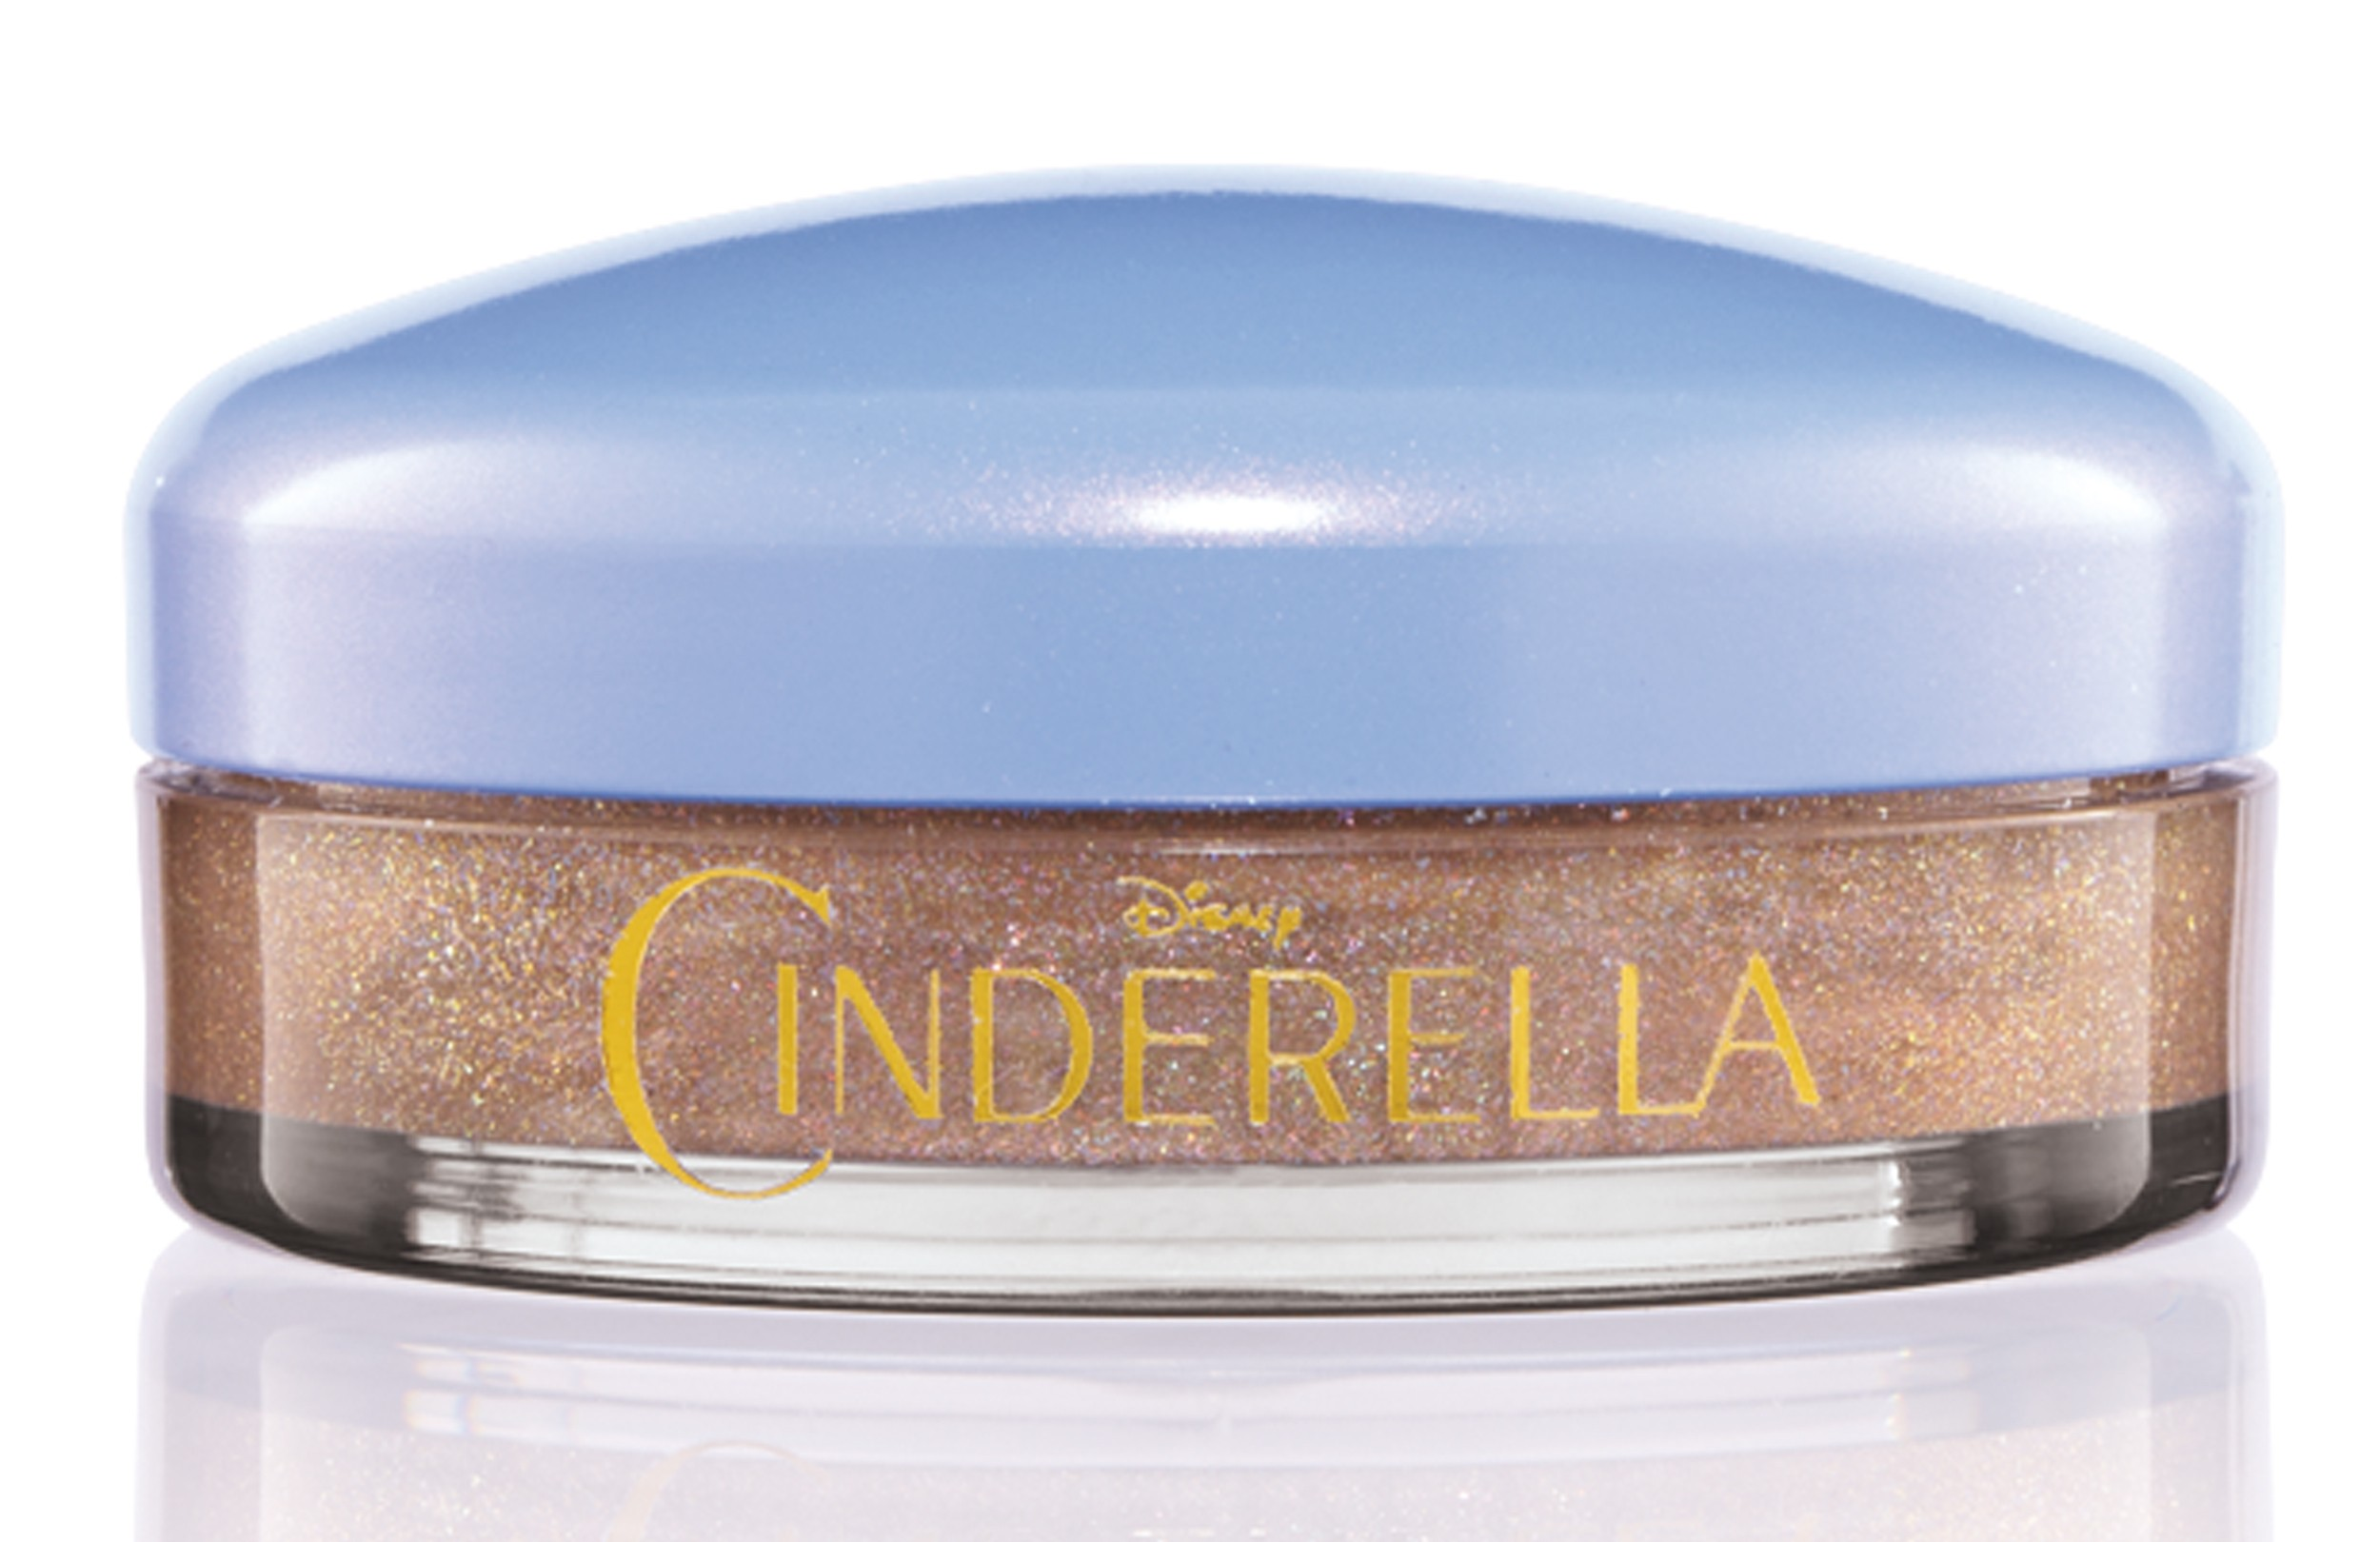 Introducing M.A.C Cinderella... A Collection As Pretty As A Princess!